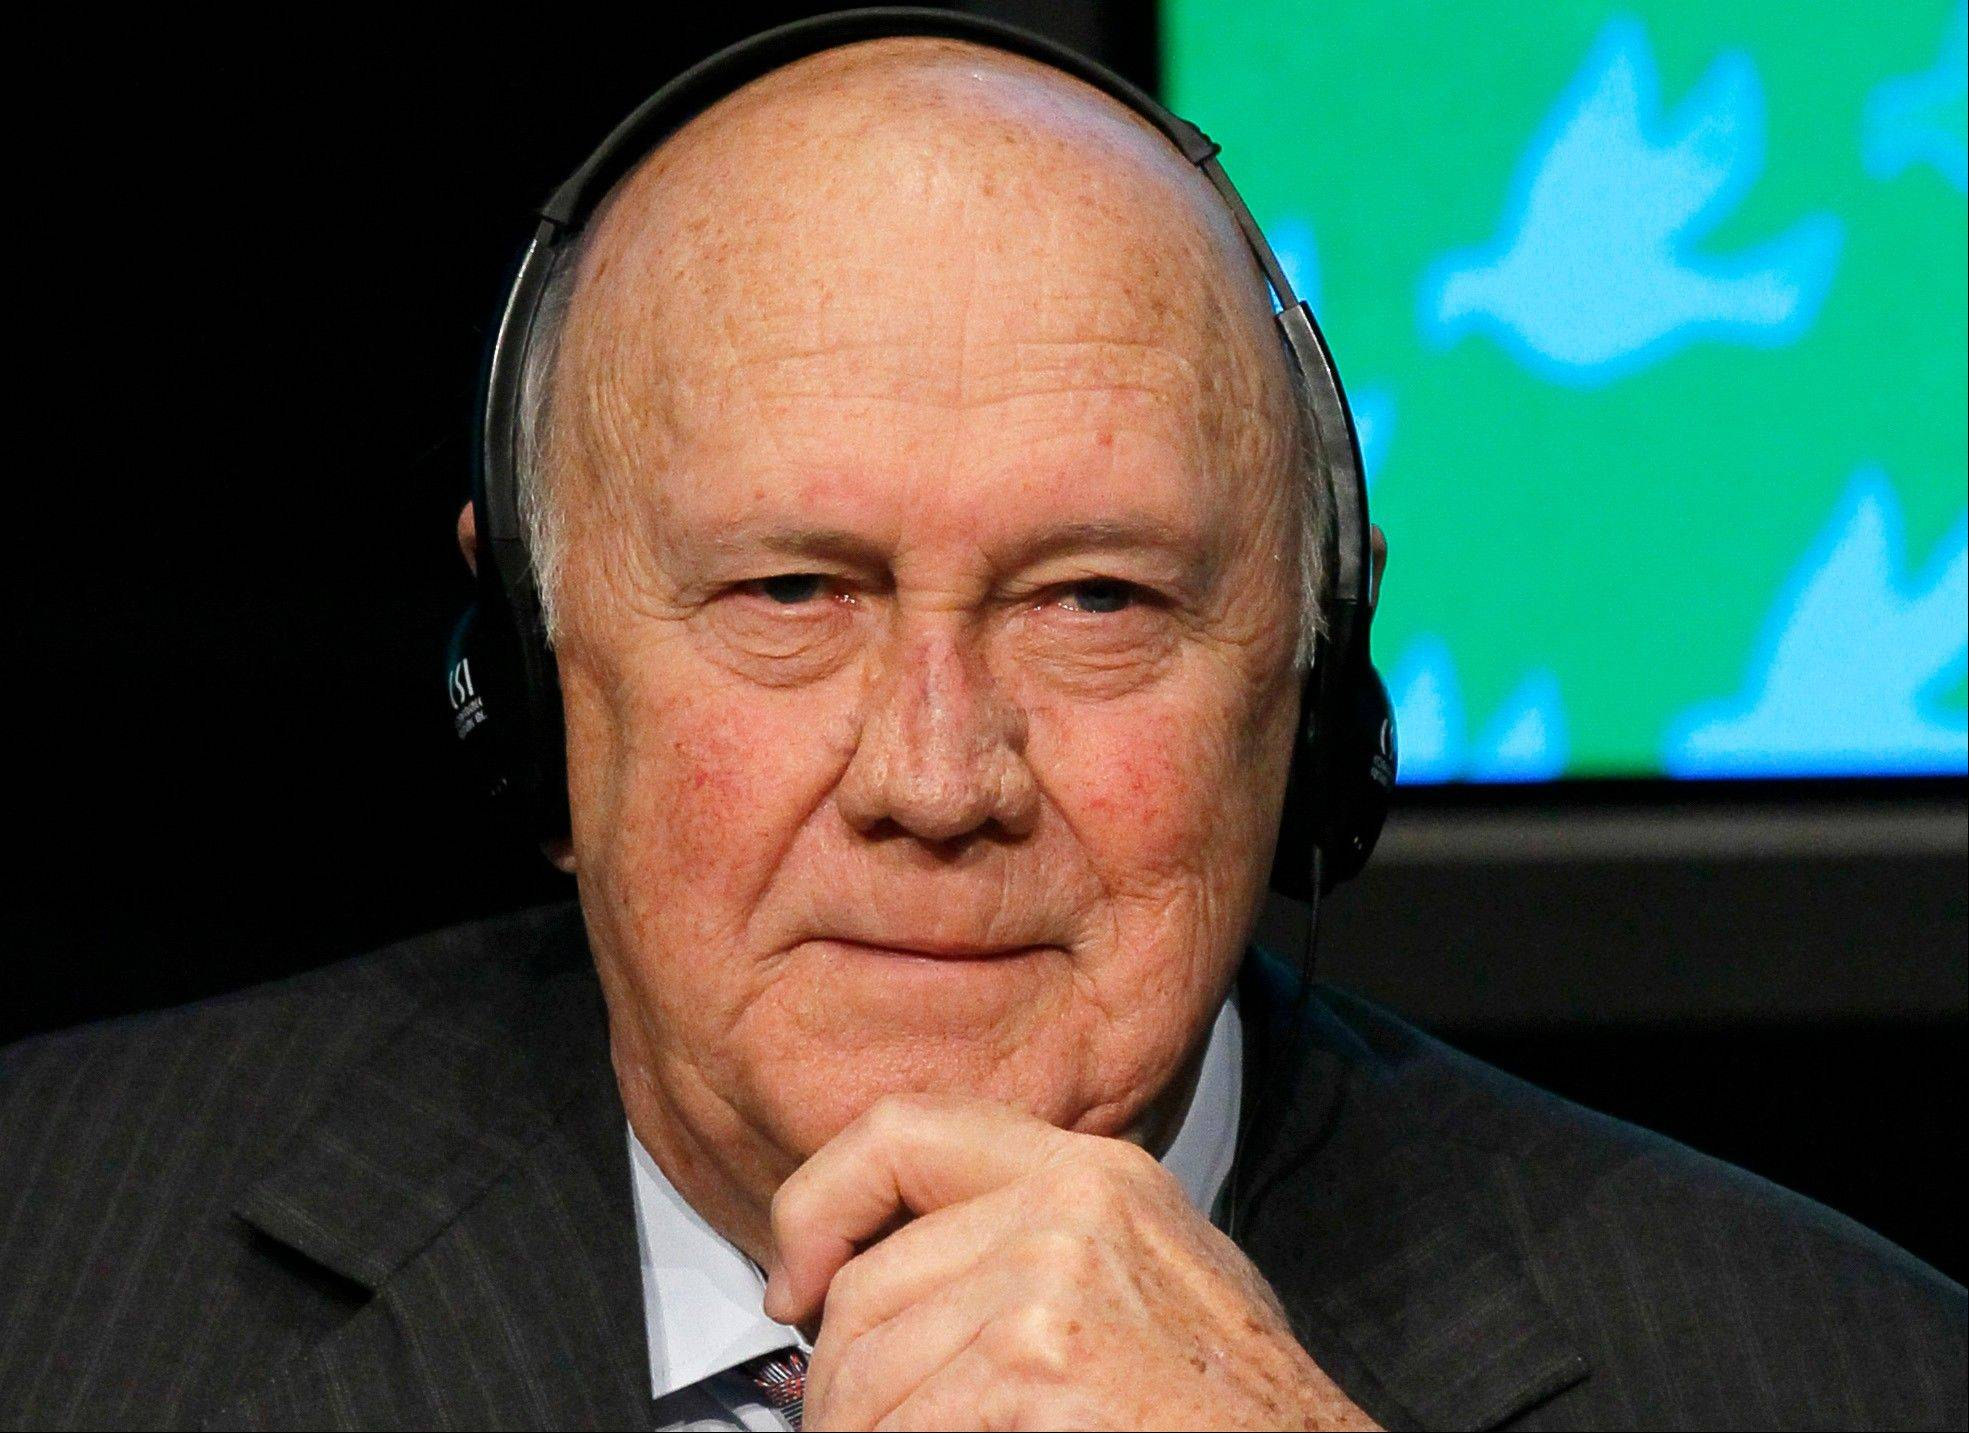 Former South African President F.W. de Klerk, the last leader of the apartheid era and a co-recipient of the 1993 Nobel Peace Prize with Nelson Mandela, will be fitted with a pacemaker, Tuesday July 2, 2013, to help his heart function.